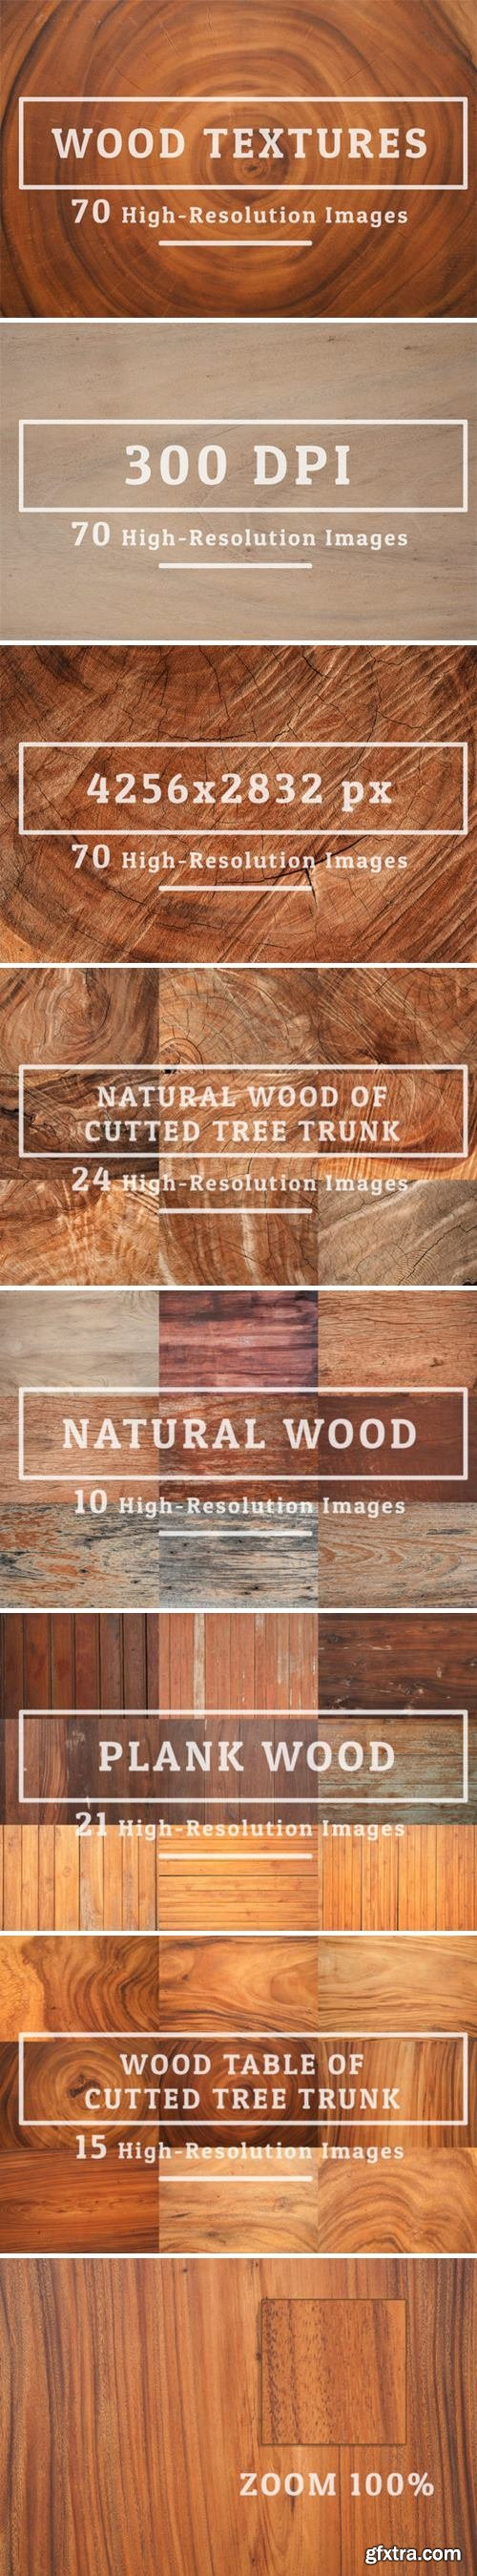 70 Wood Texture Background 4317539